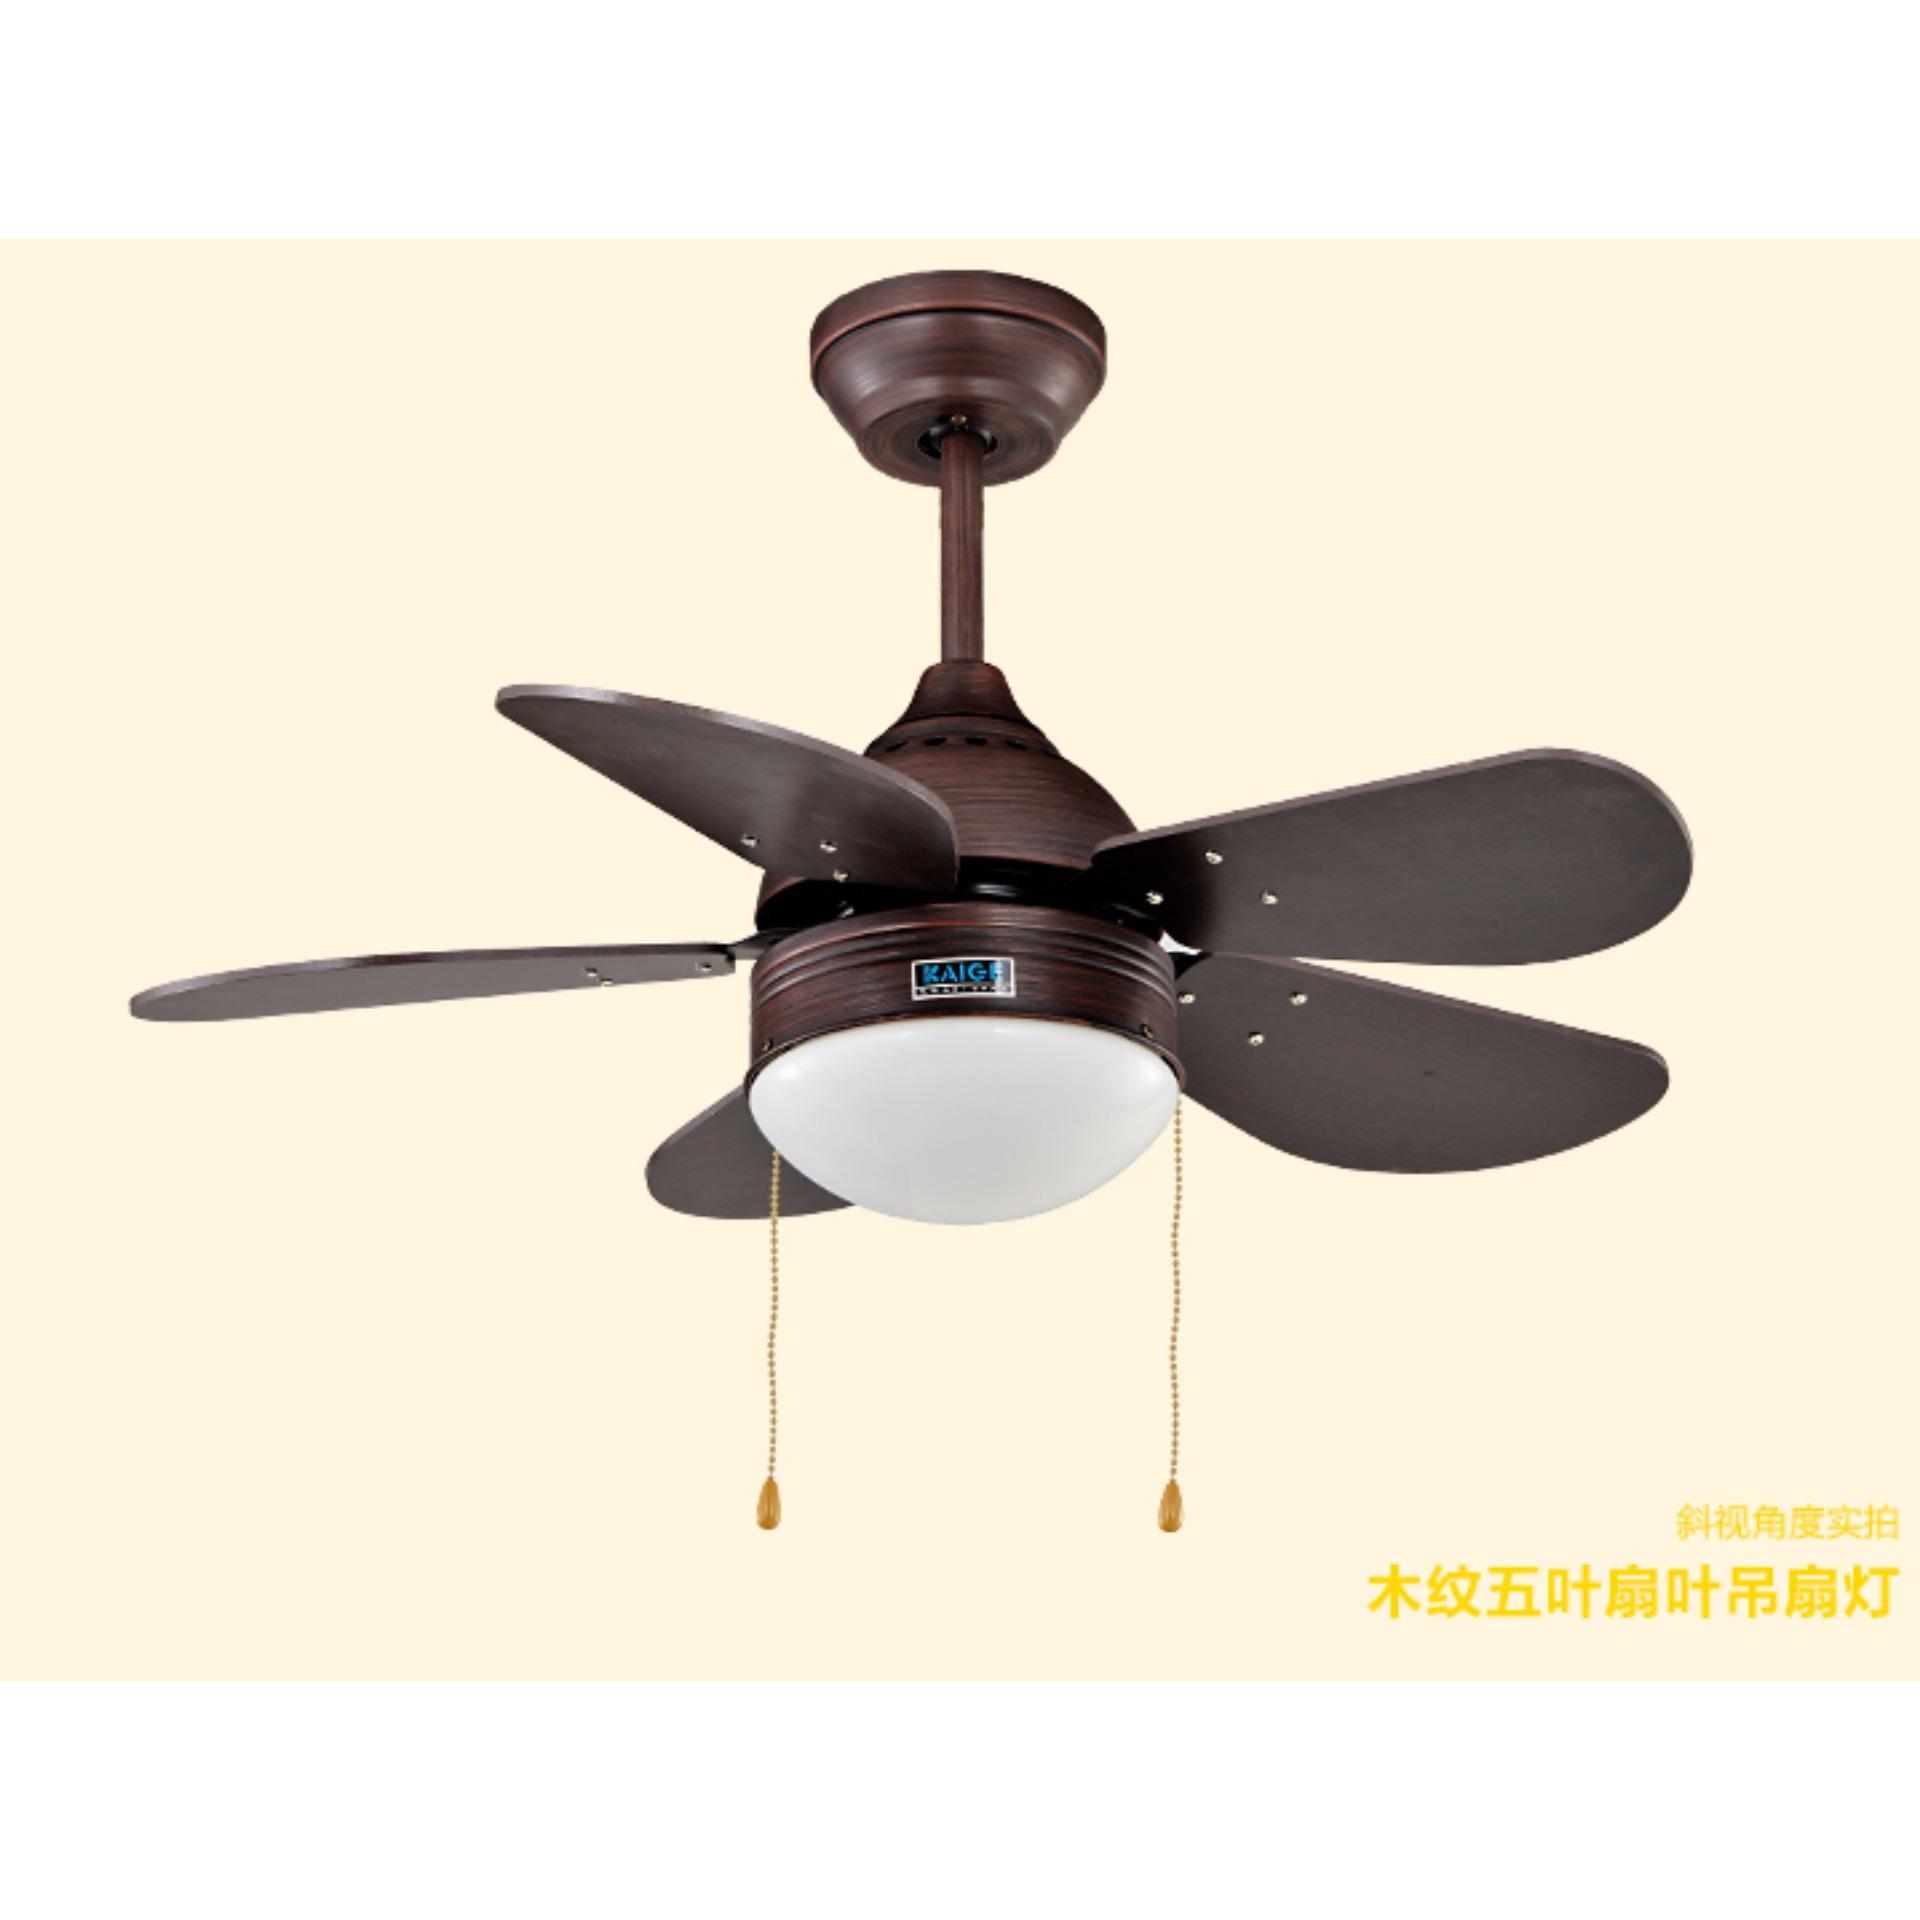 Ceiling Design Ideas In Philippines: Ceiling Fan With Chandelier Philippines